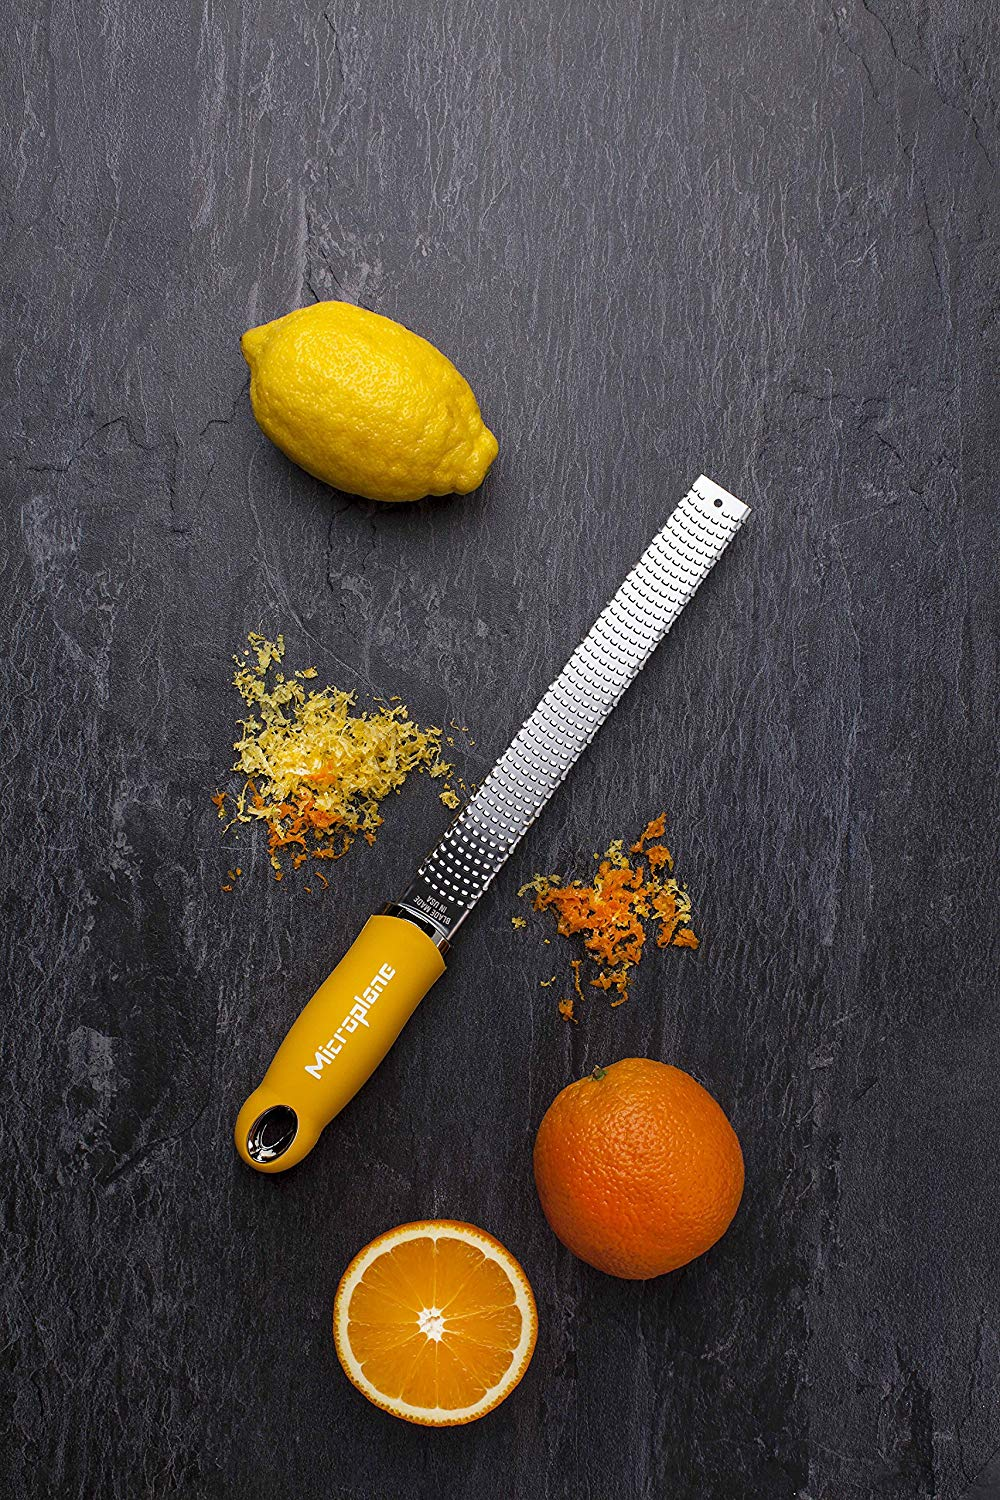 Yellow Microplane Lemon Zester - I got this lemon zester a few years ago and it has been my go to zester for all things citrus. I use it for my Lemon Keylime Bars!